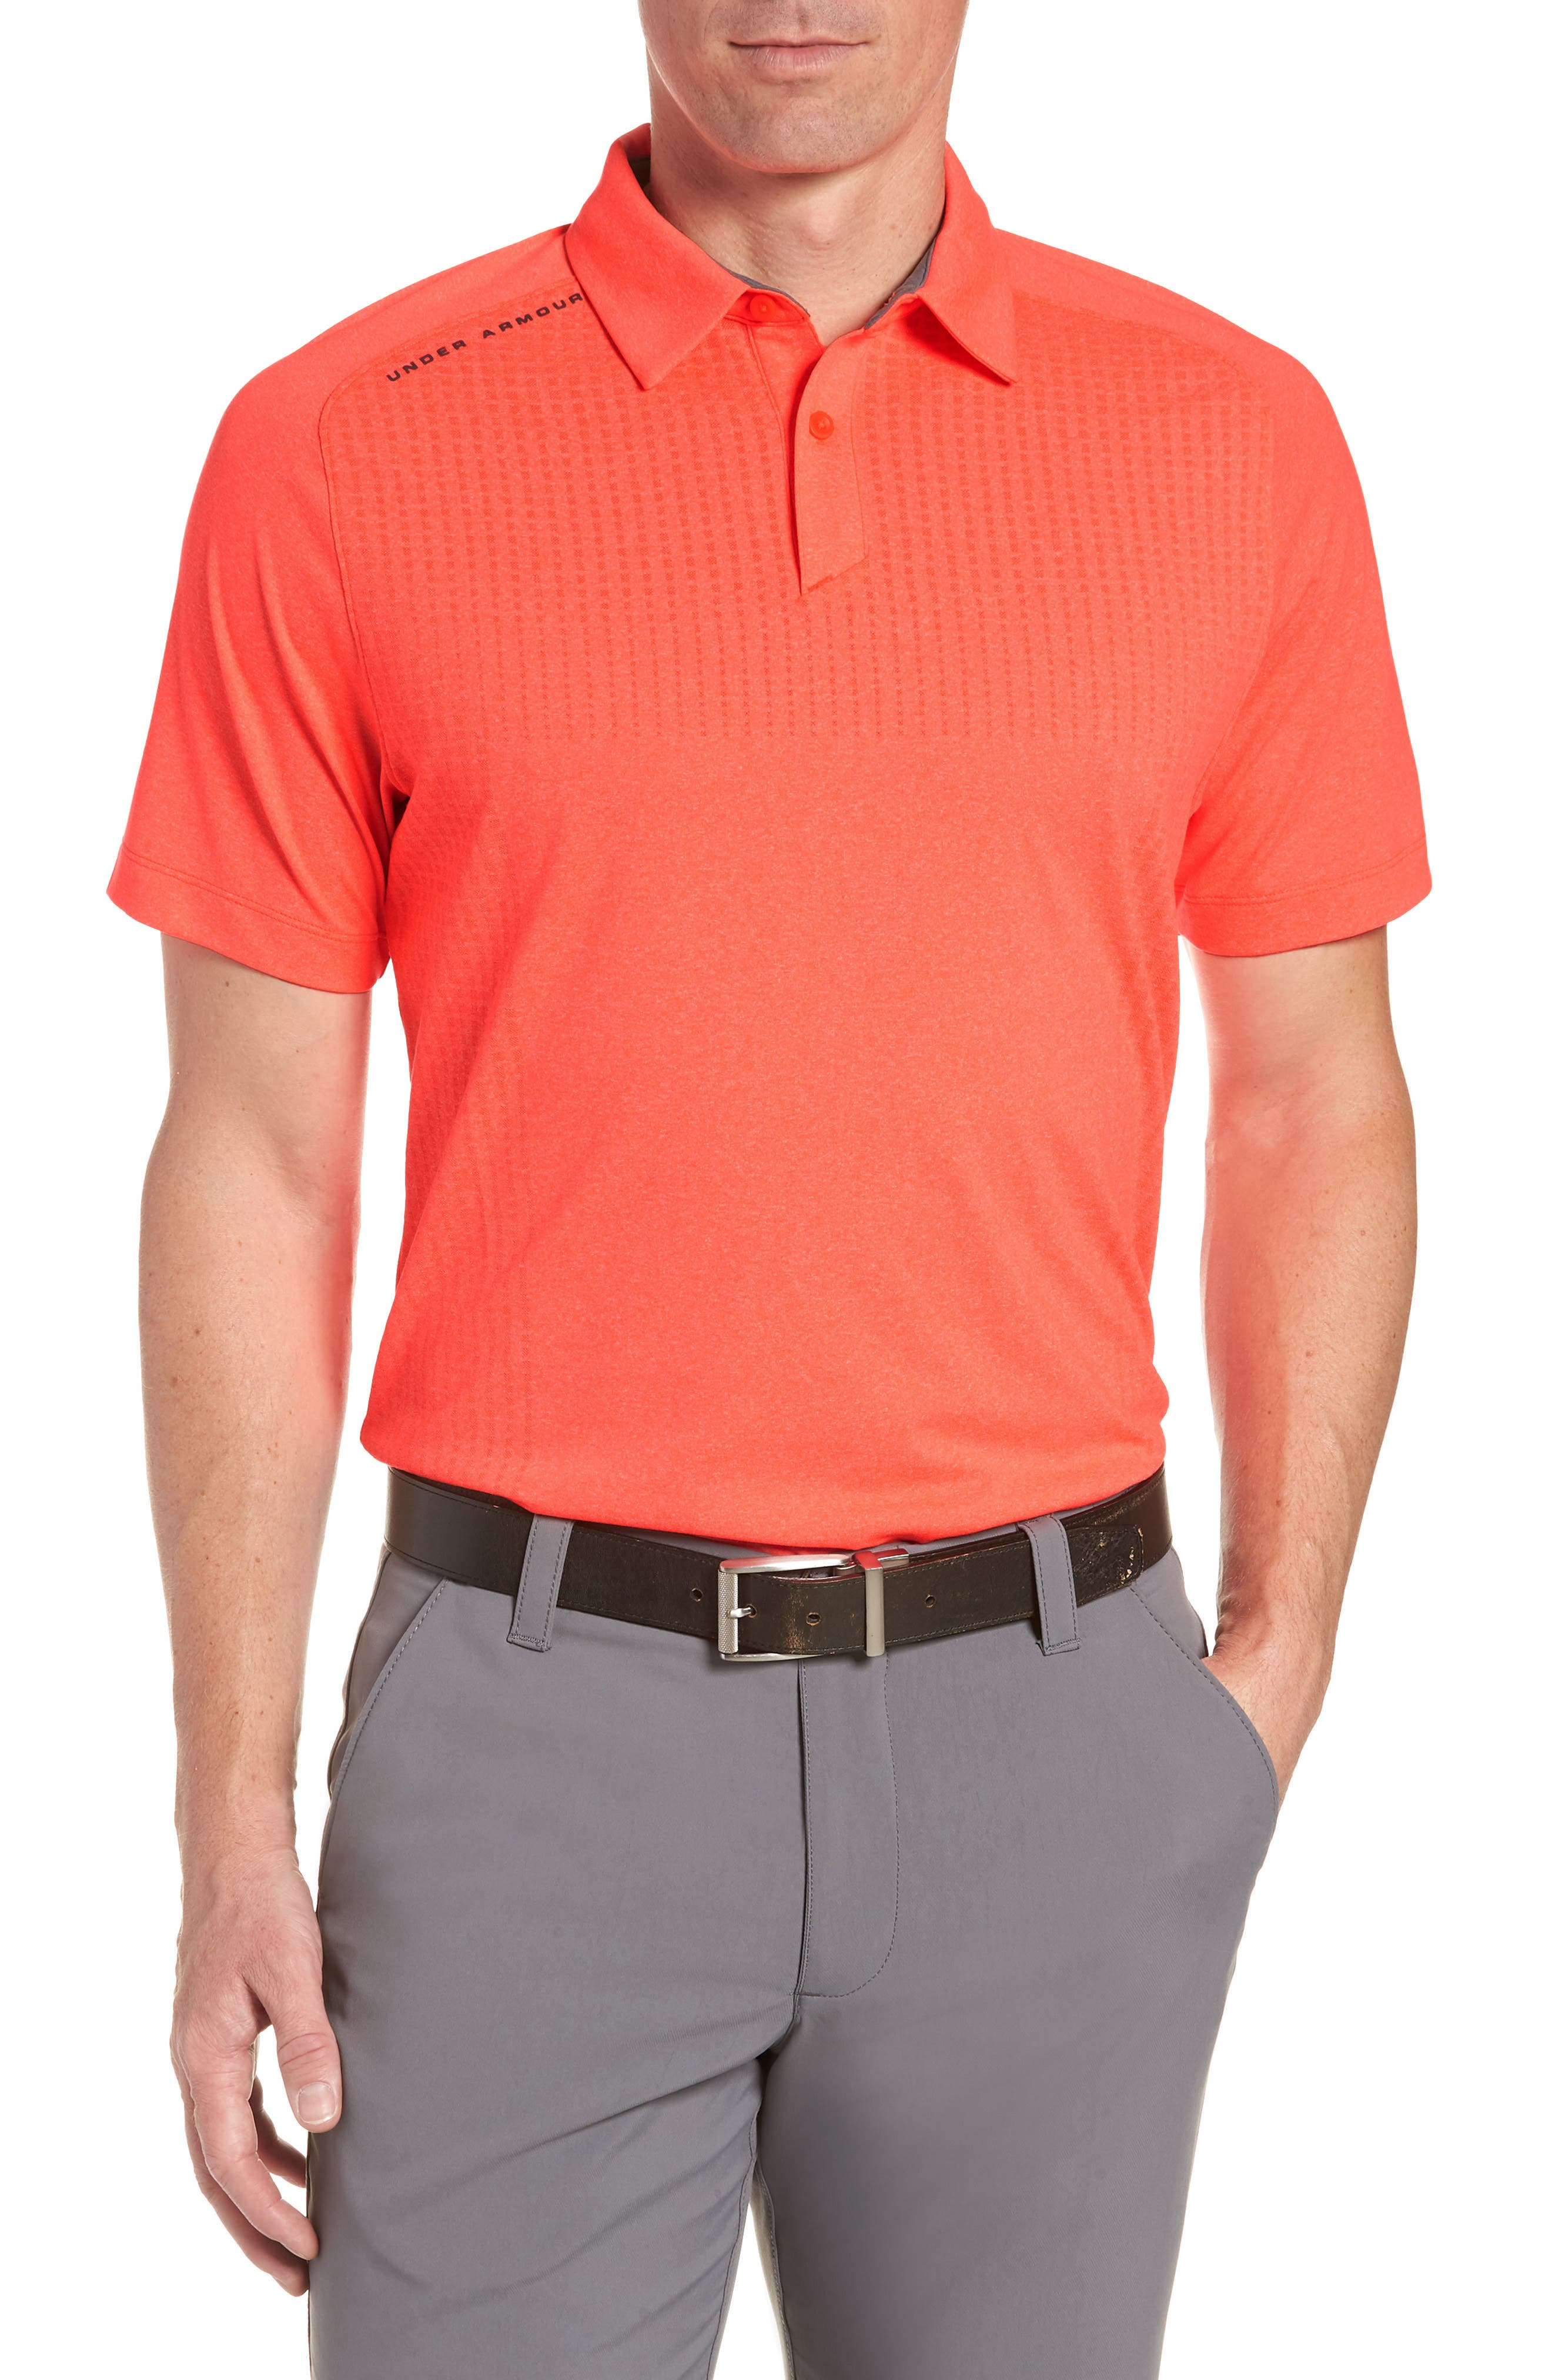 UNDER ARMOUR, Threadborne Outer Glow Regular Fit Polo Shirt, Main thumbnail 1, color, NEON CORAL LIGHT/ HEATHER